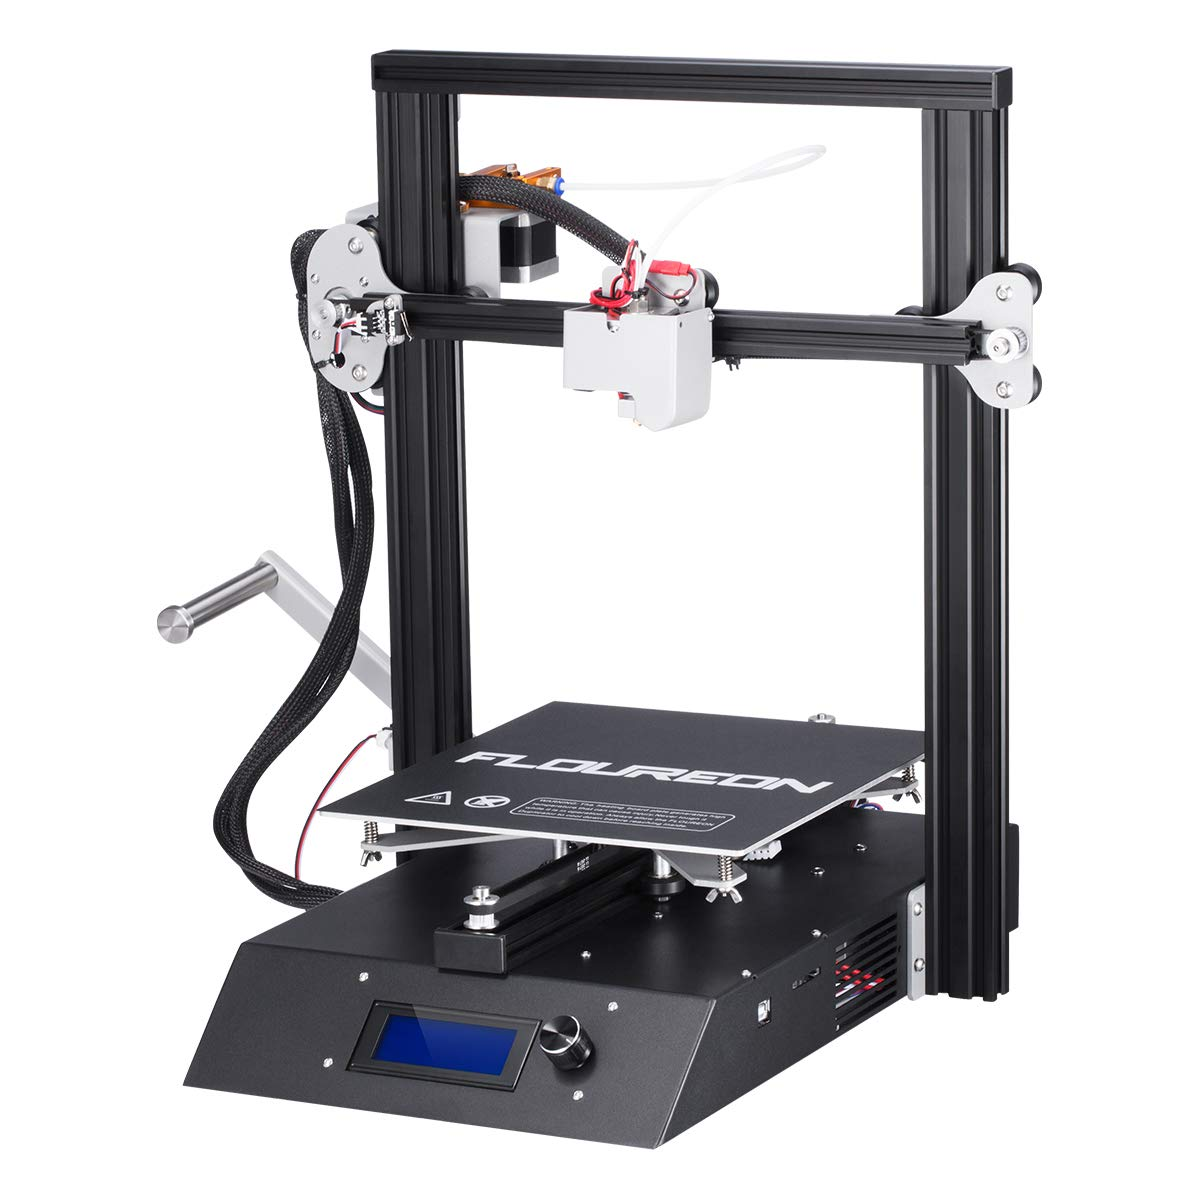 FLOUREON 3D Printer DIY Kit XYZ 3D Printer Ender 3 with 3D Printer Filament LCD Display Full Metal Frame 3.7 Inch Touch Screen Large Print Size Works with PLA, ABS, HIPS, WOOD